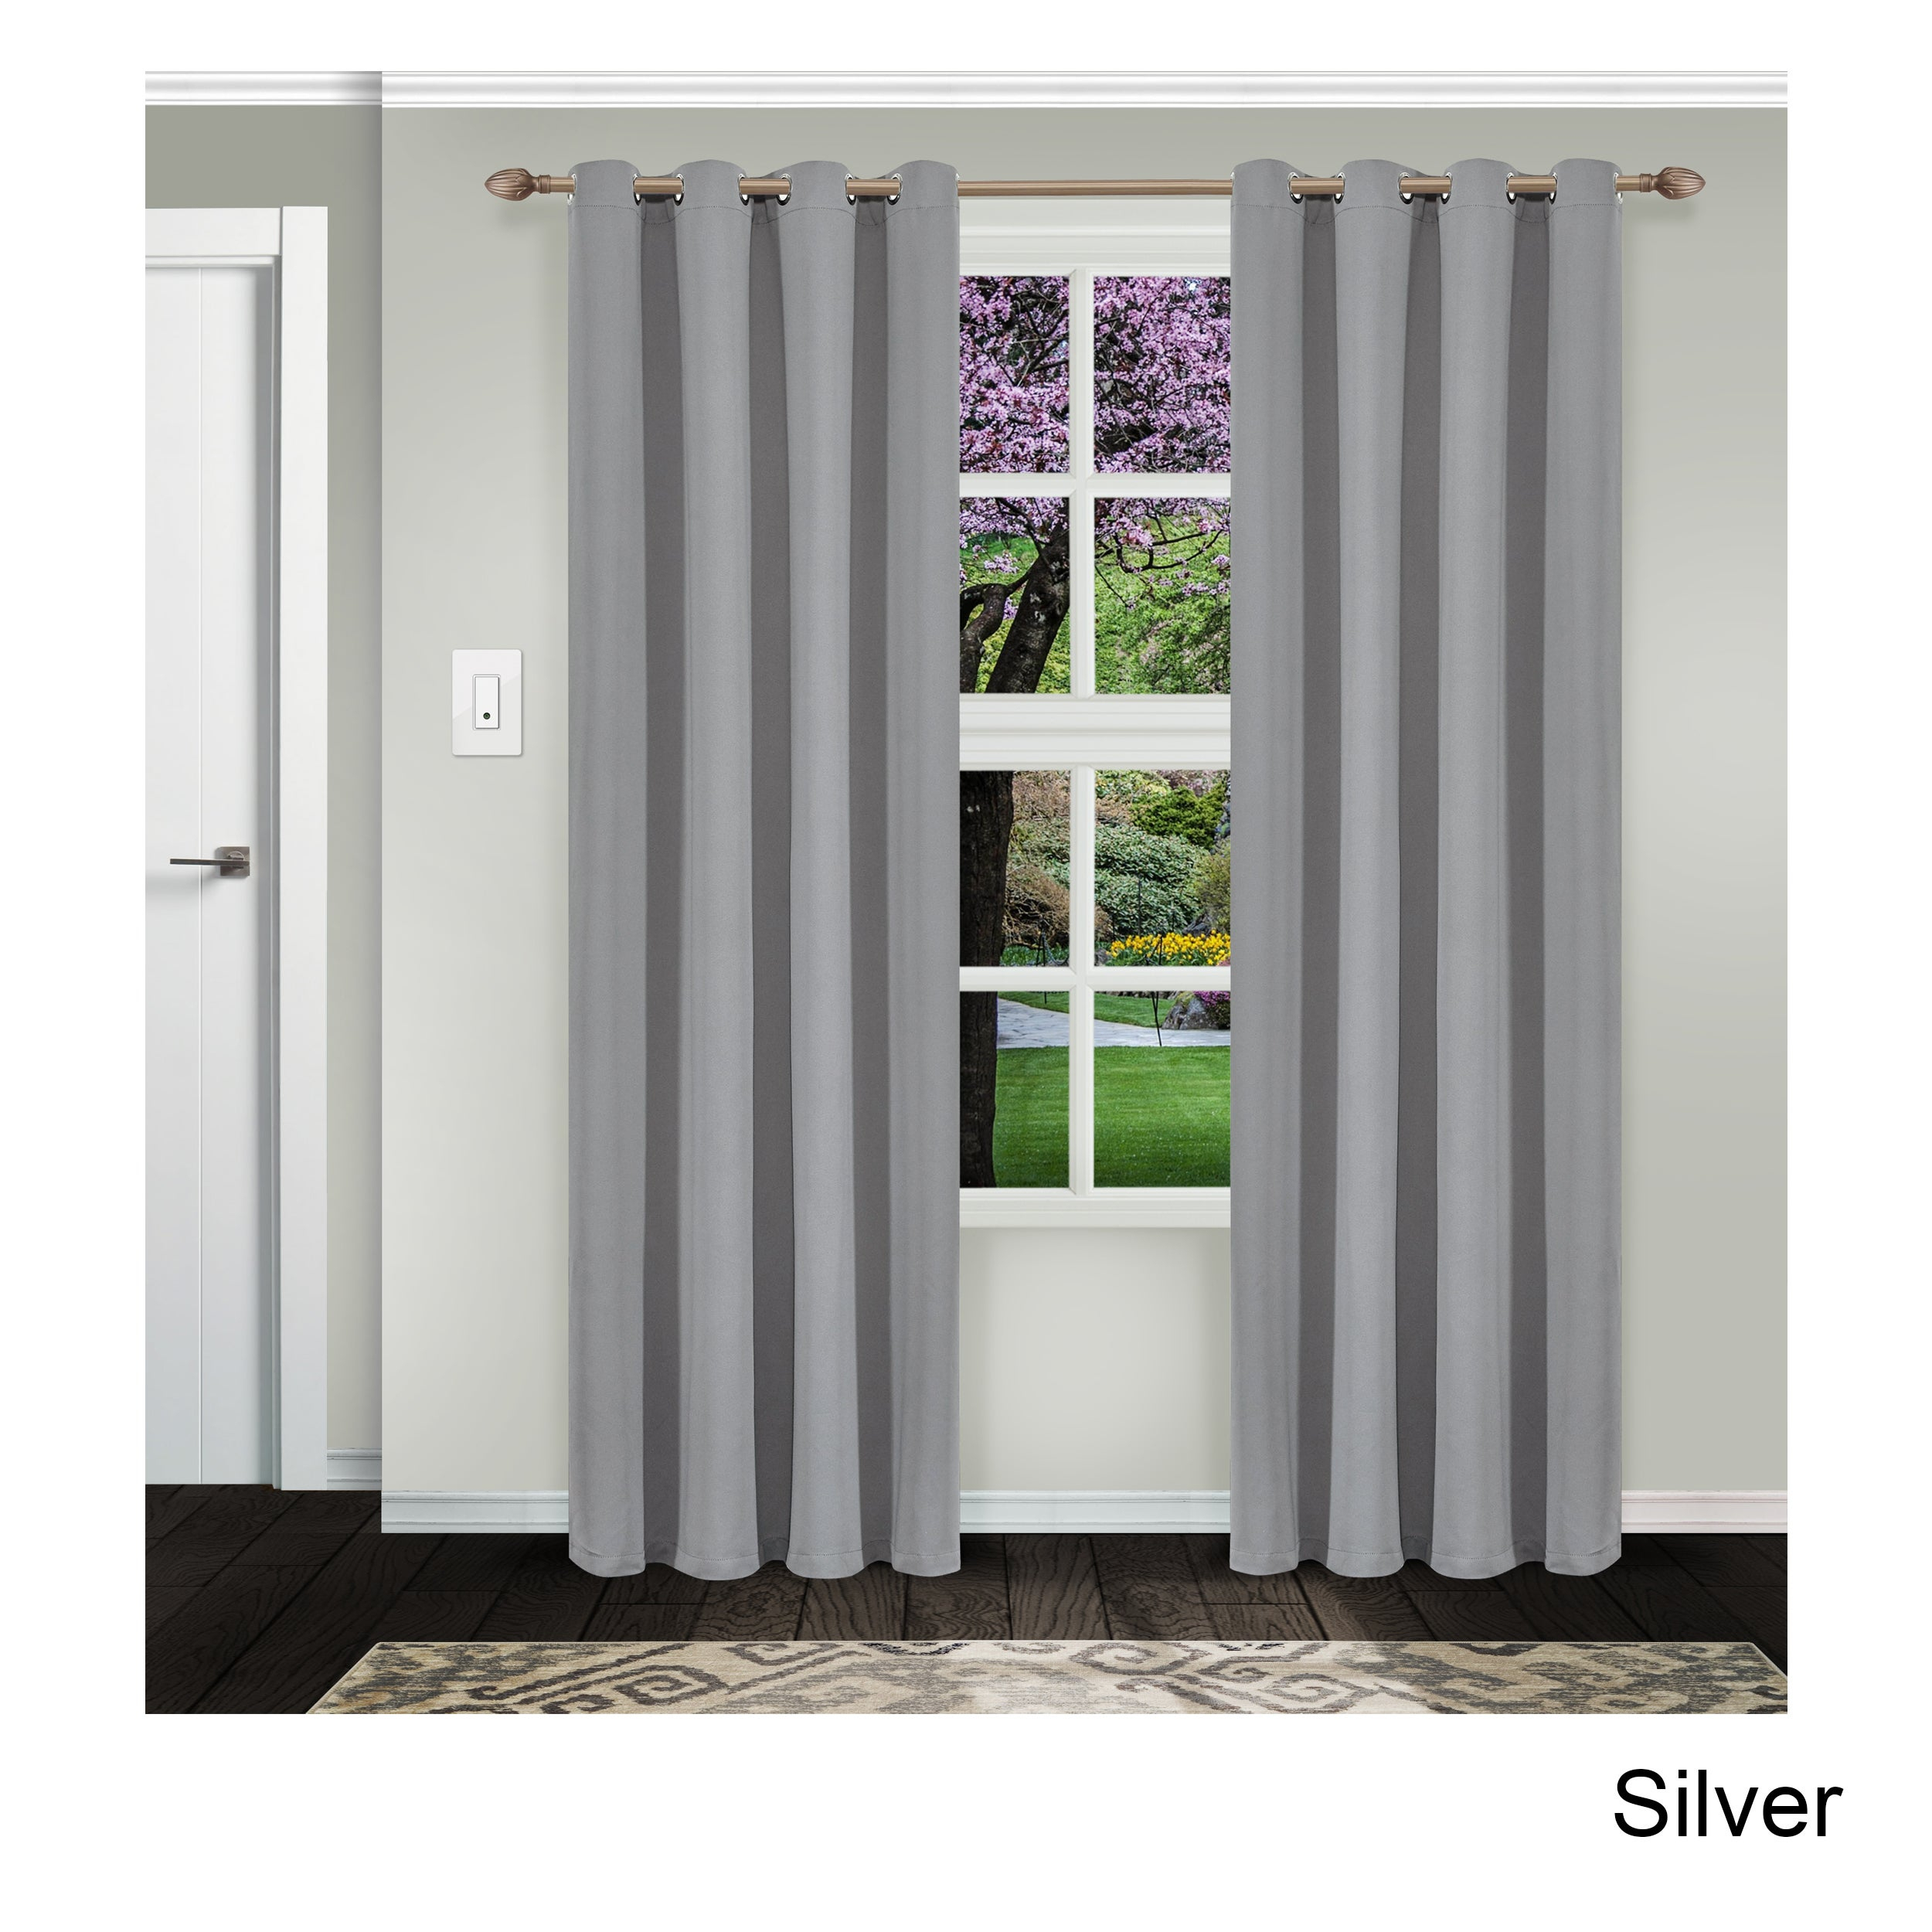 Superior Solid Insulated Thermal Blackout Grommet Curtain Panel Pair With Solid Insulated Thermal Blackout Curtain Panel Pairs (View 8 of 30)